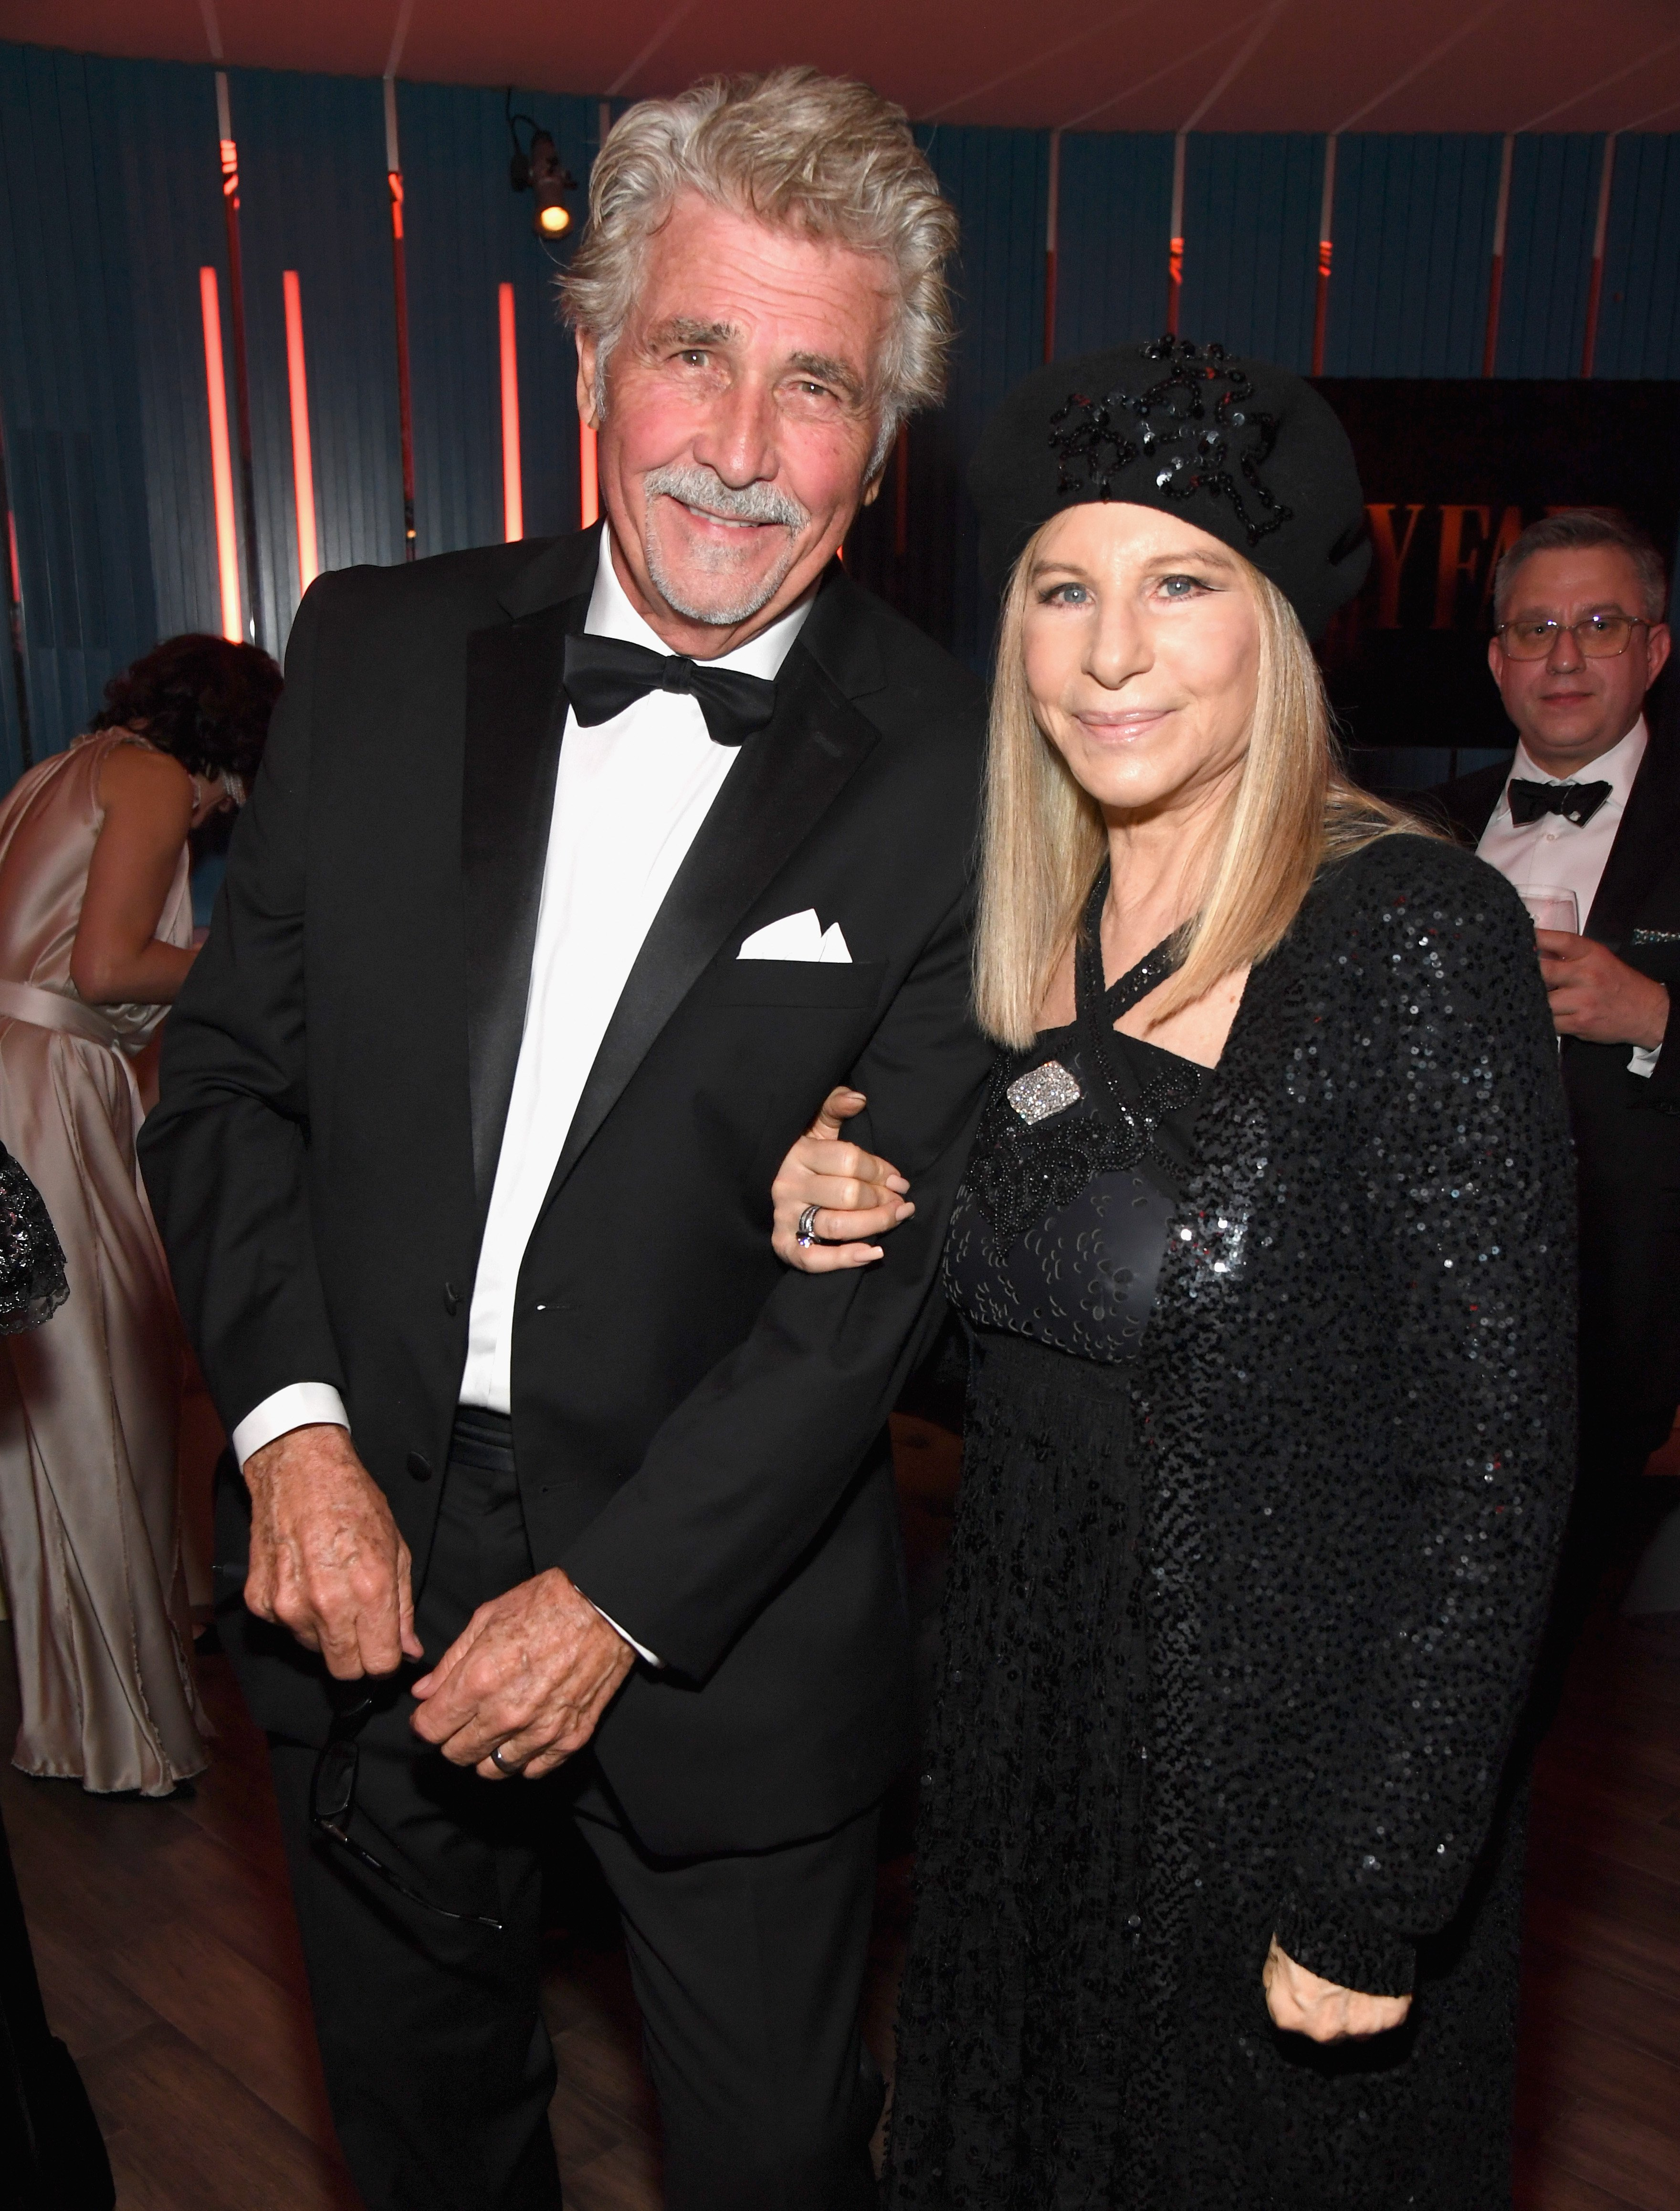 James Brolin and Barbra Streisand attend the 2019 Vanity Fair Oscar Party hosted by Radhika Jones on February 24, 2019, in Beverly Hills, California.   Source: Getty Images.